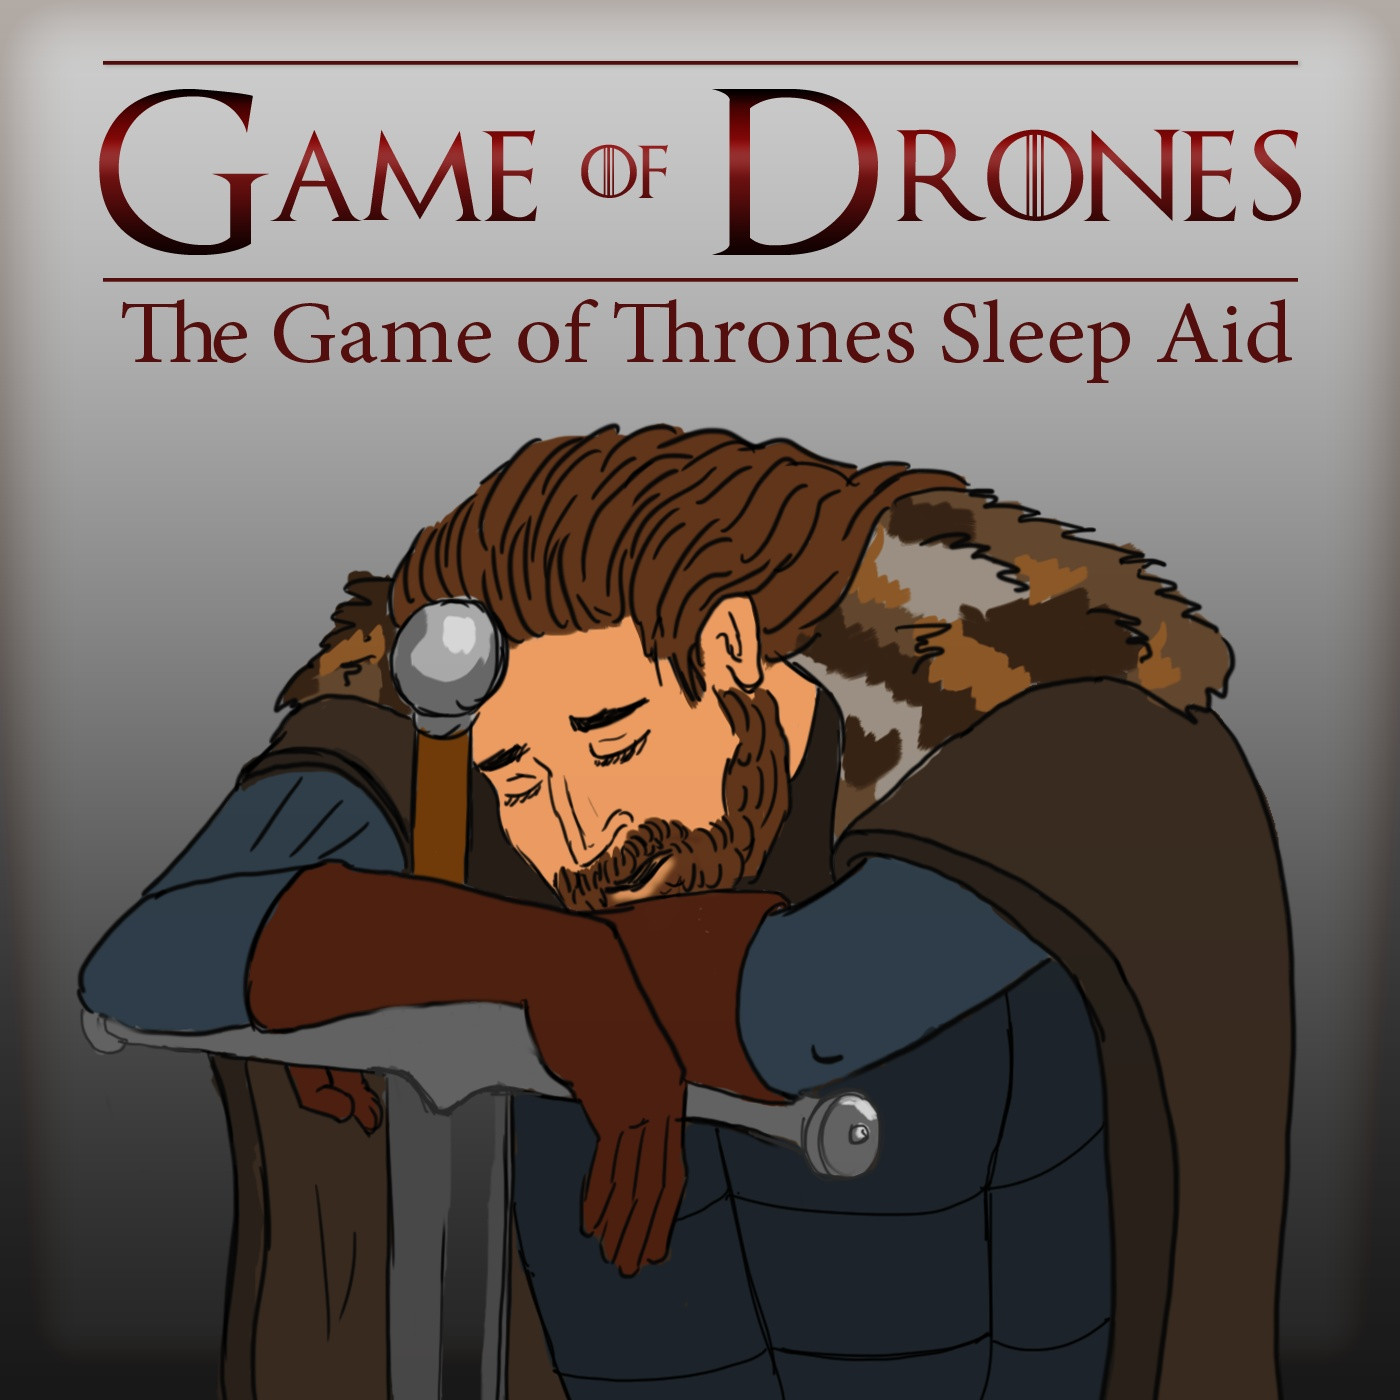 New Game of Drones Episodes Will Be In Main Feed